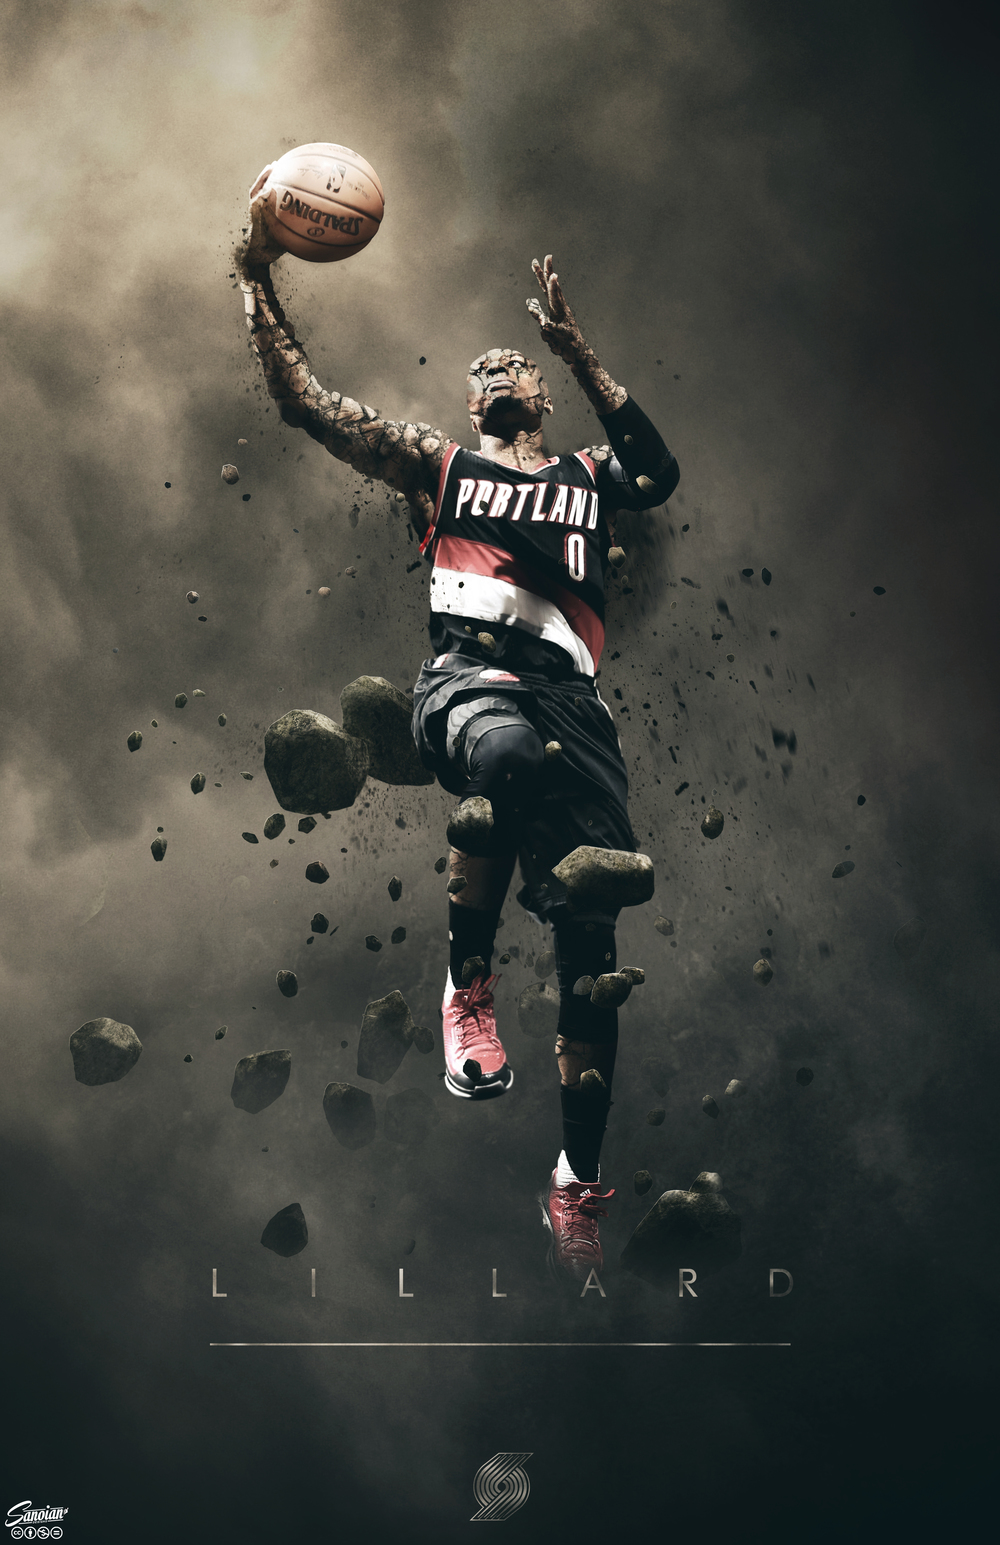 Earth Ascending - Damian Lillard